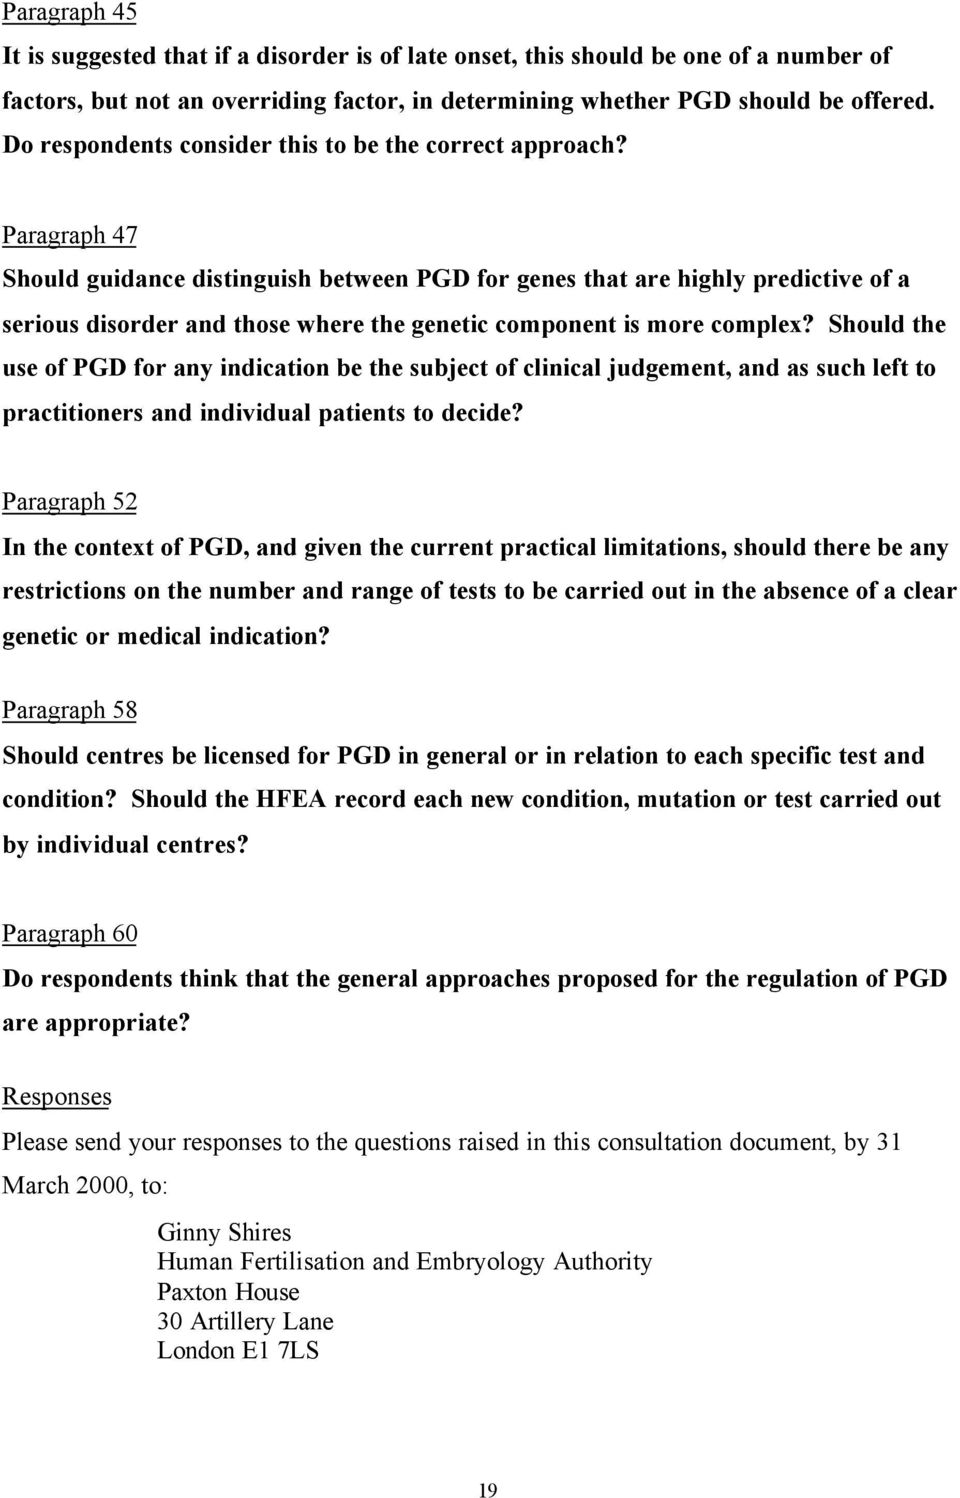 Paragraph 47 Should guidance distinguish between PGD for genes that are highly predictive of a serious disorder and those where the genetic component is more complex?